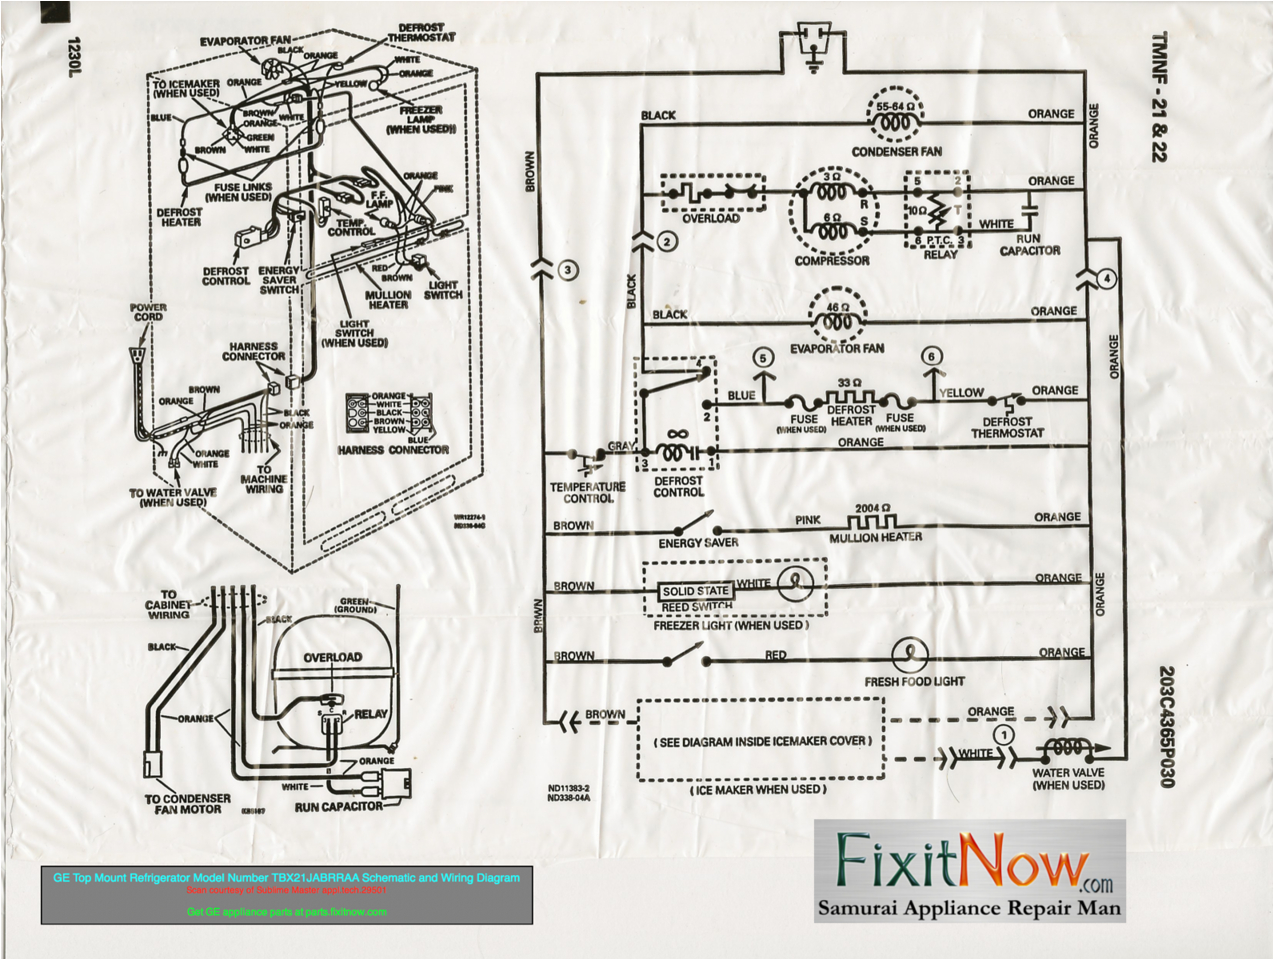 wiring diagrams and schematics appliantology rh appliantology smugmug com ge stove wire diagrams ge dishwasher wire